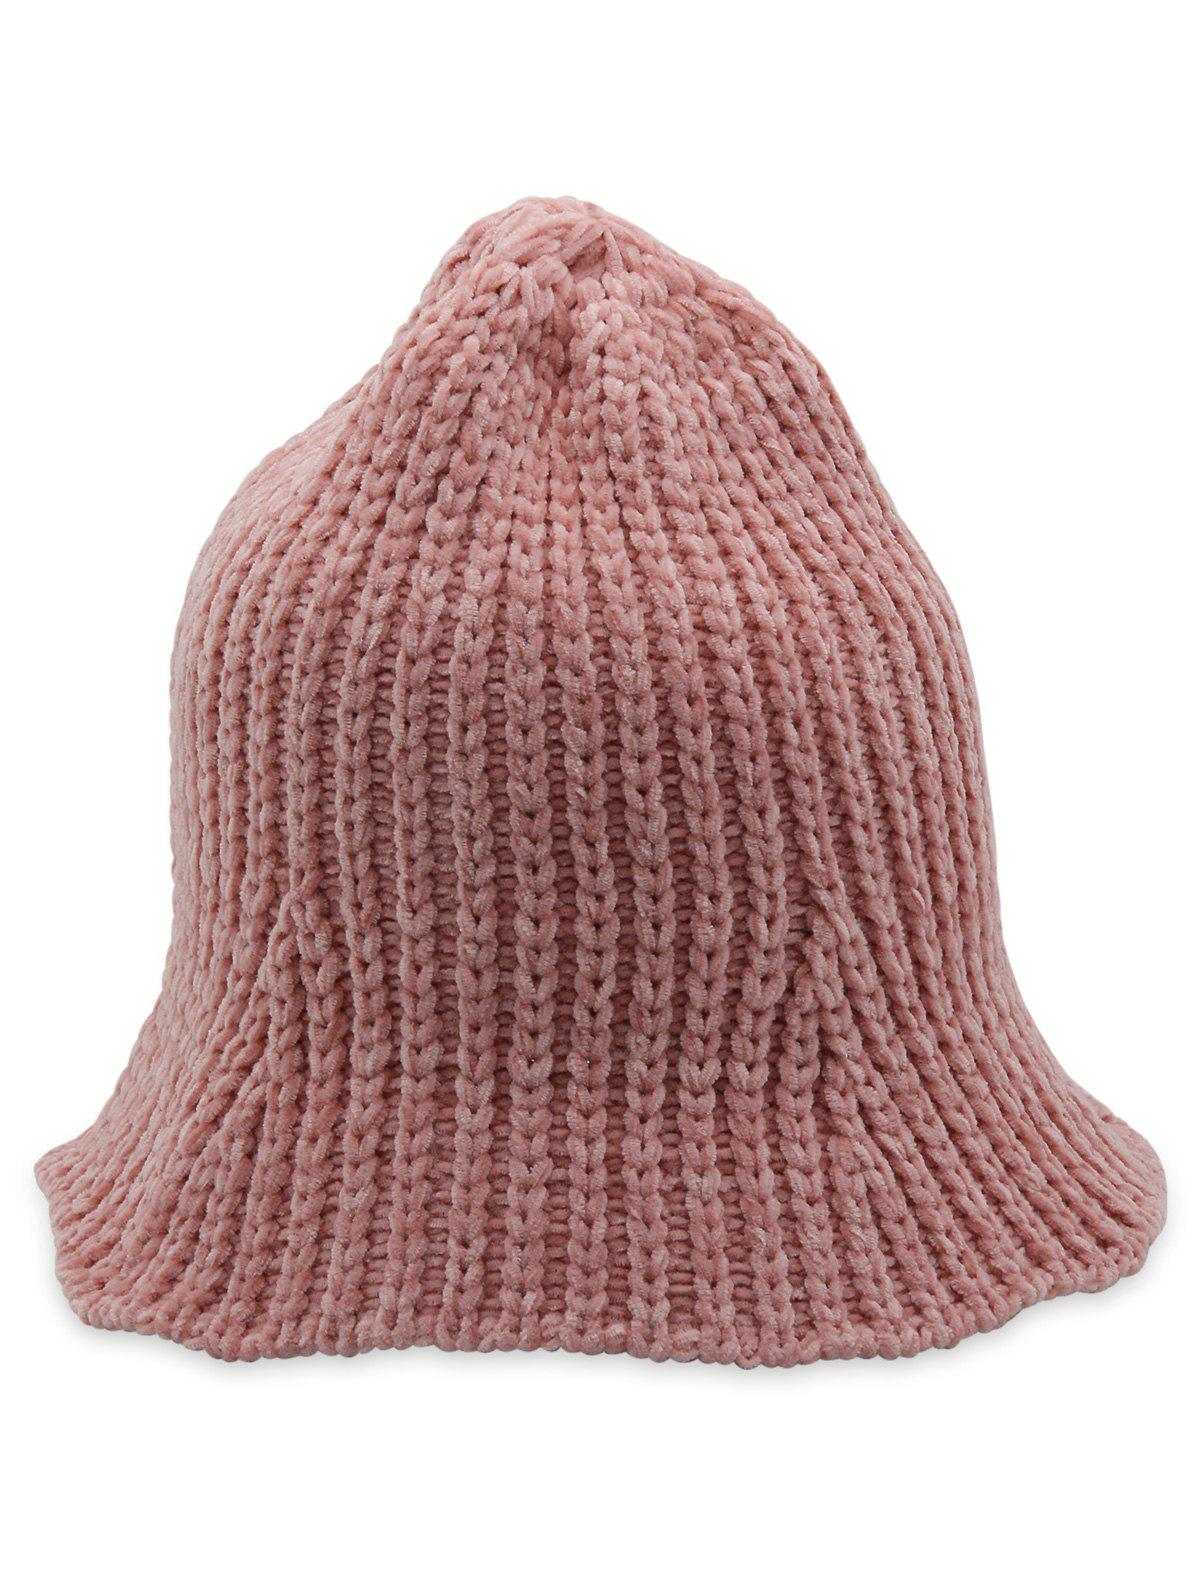 Discount Flanging Knitted Fisherman Hat 4a51e517f484